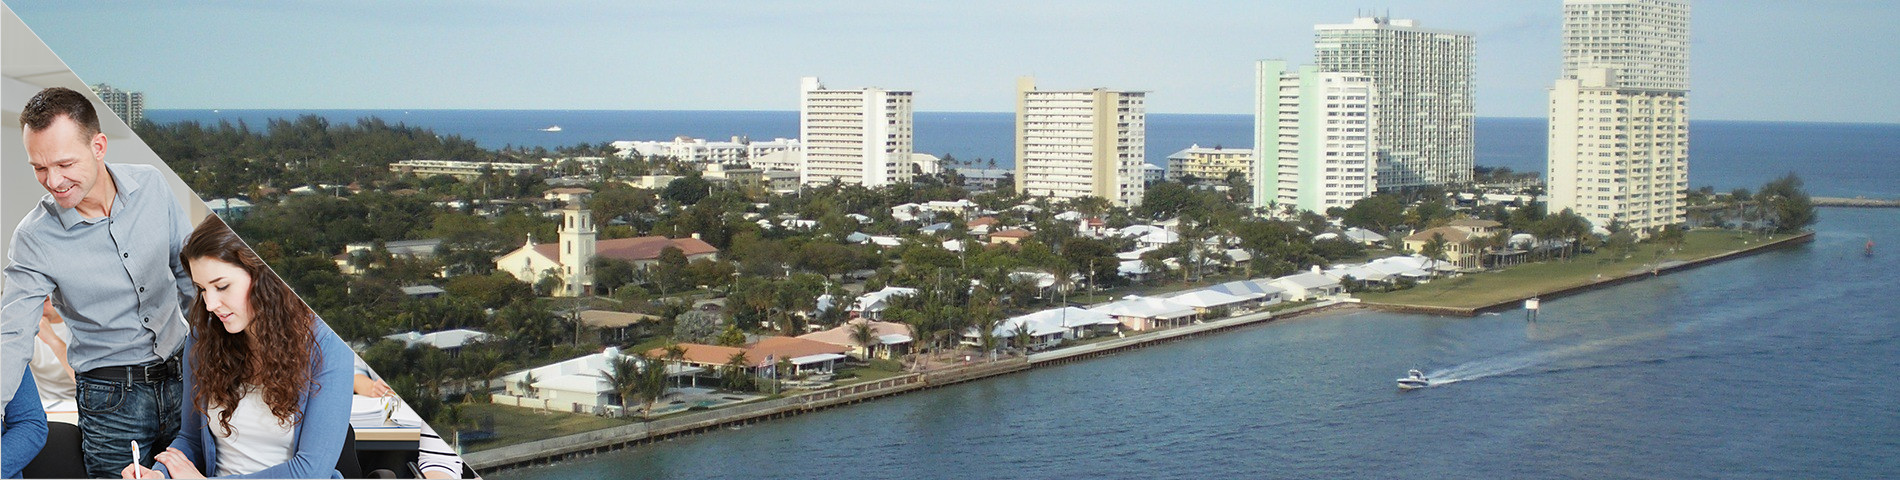 Fort Lauderdale - Combi: Groupe + particuliers